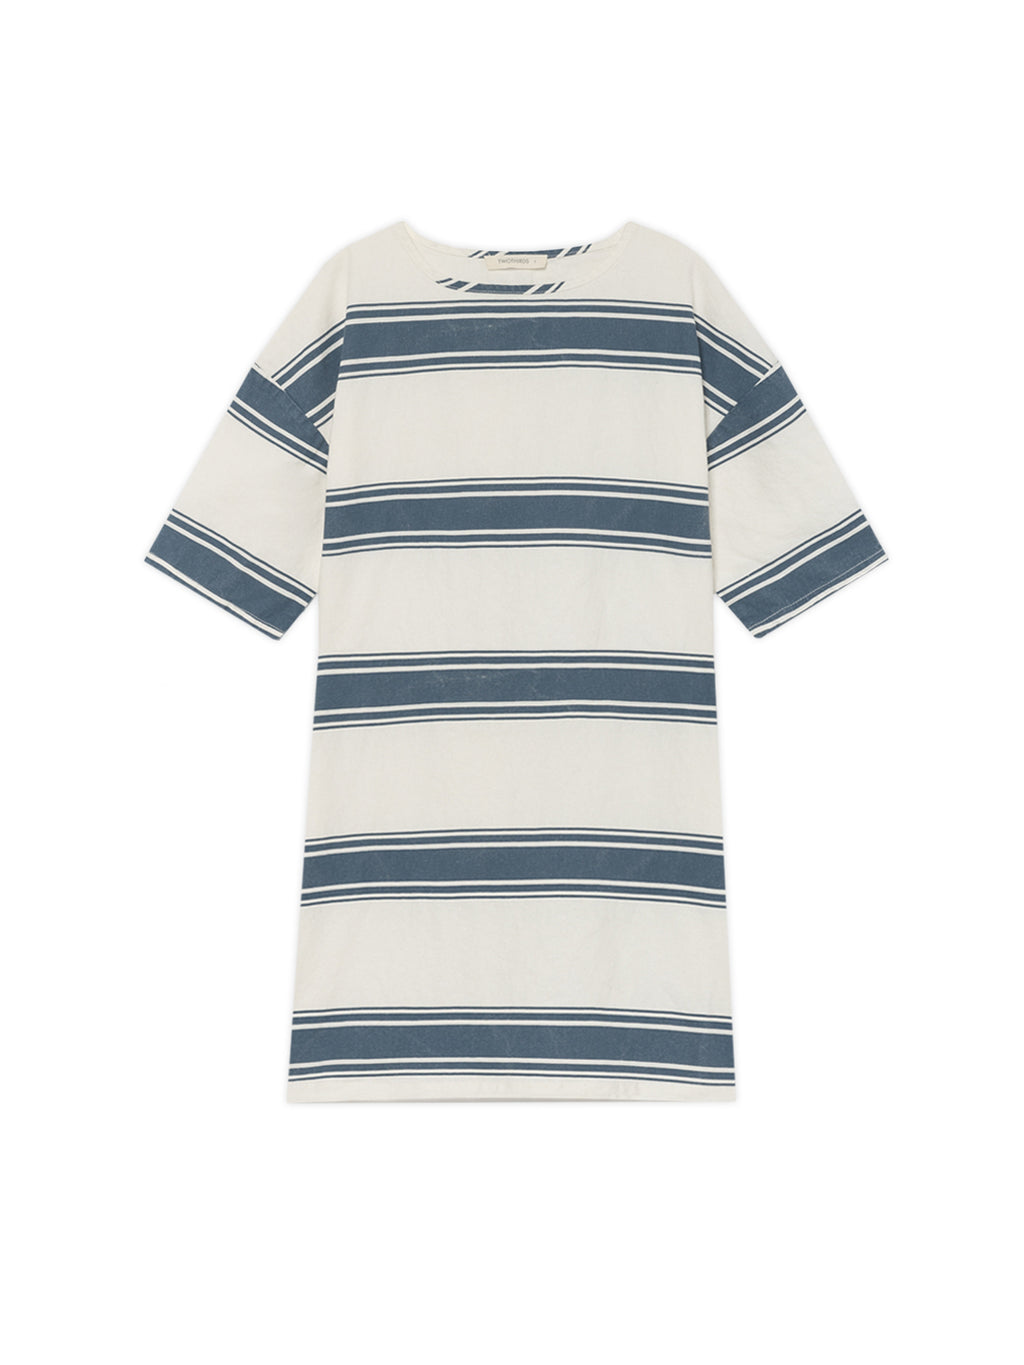 TWOTHIRDS Womens Dress: Tilou - Blue Stripes front